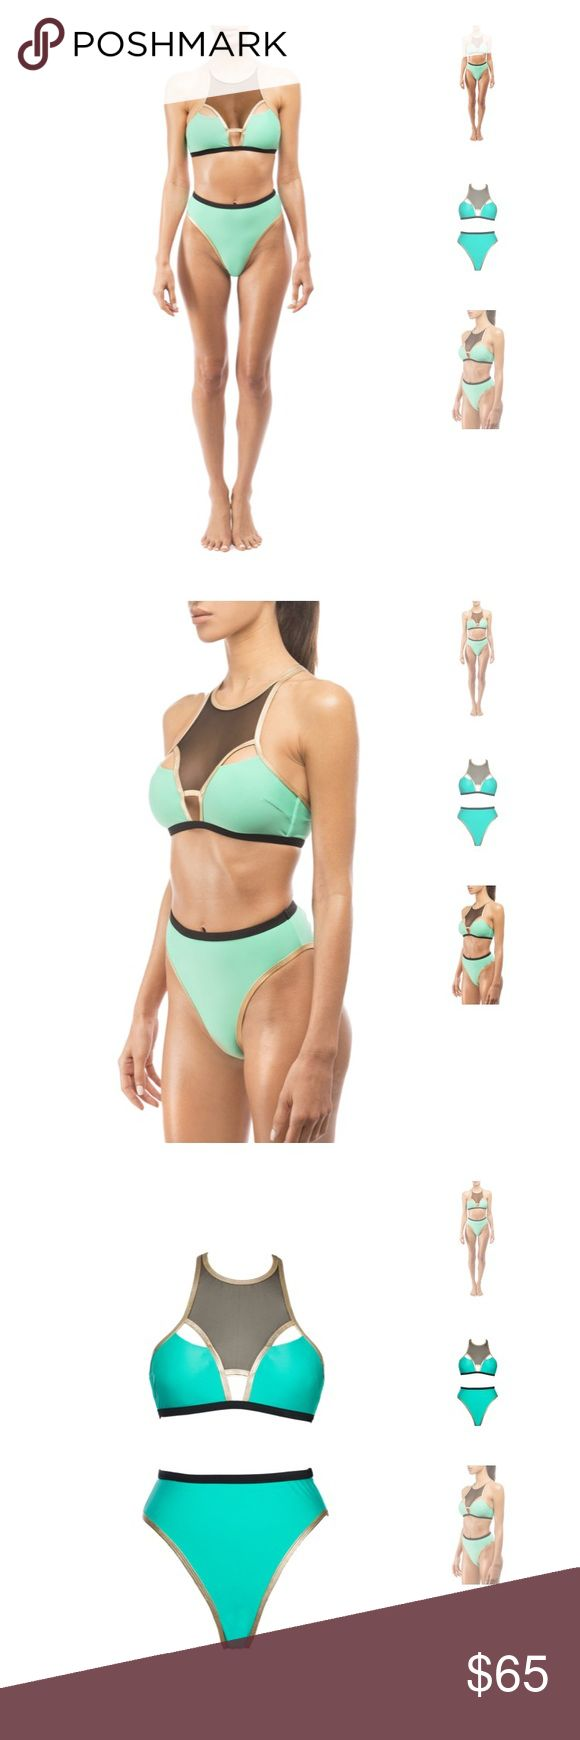 Andrea Iyamah designer teal&mesh swim halter top Totally unique and gorgeous swimsuit top by one of my favorite designers of swimwear, Andrea Iyamah. This top is a greenish teal, with black mesh and gold outlines, and has matching bottoms that you can buy online. The straps are adjustable and the halter style (with padding!) keeps everything in place :) I love this top a lot but unfortunately it's just slightly too big for me, so I never wore it.  From a clean, non-smoking home with no pets…